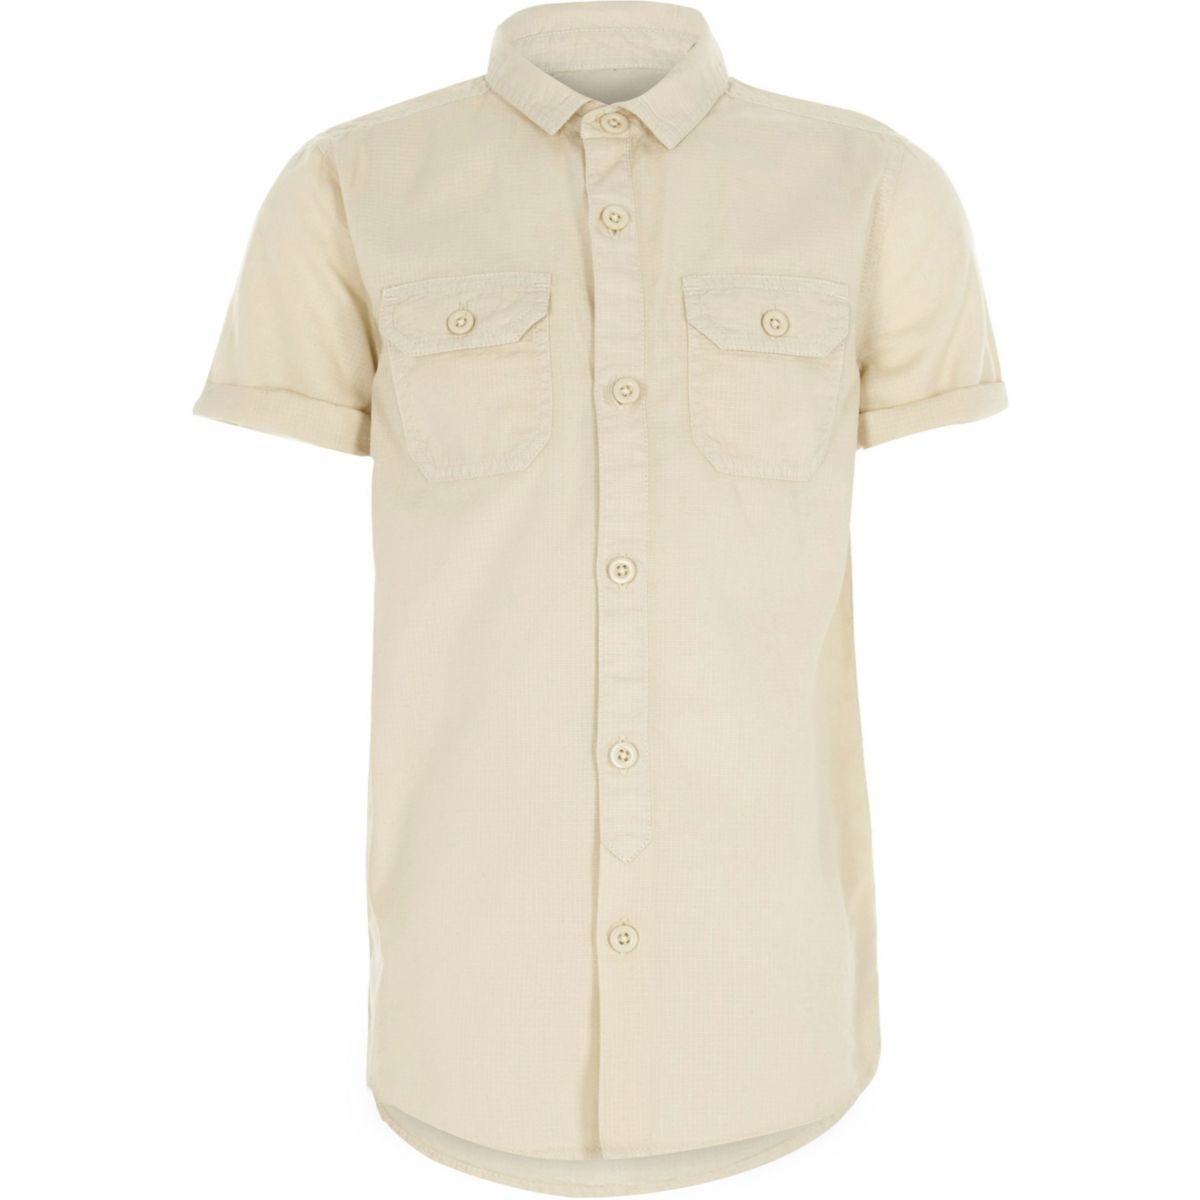 Boys stone short sleeve utility shirt